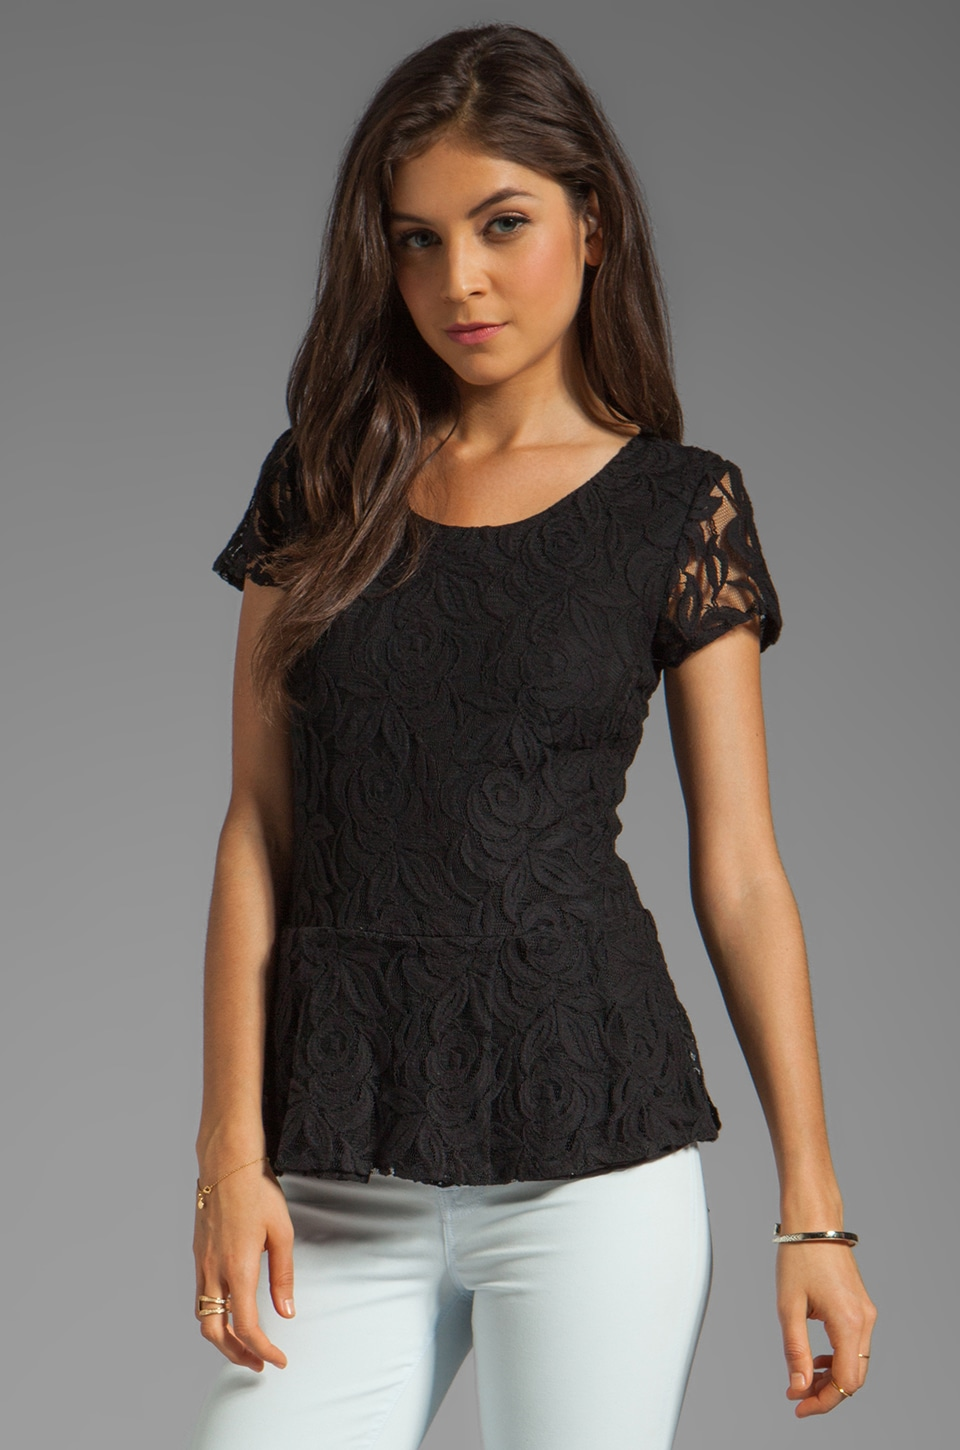 Central Park West Belize Lace Top in Black